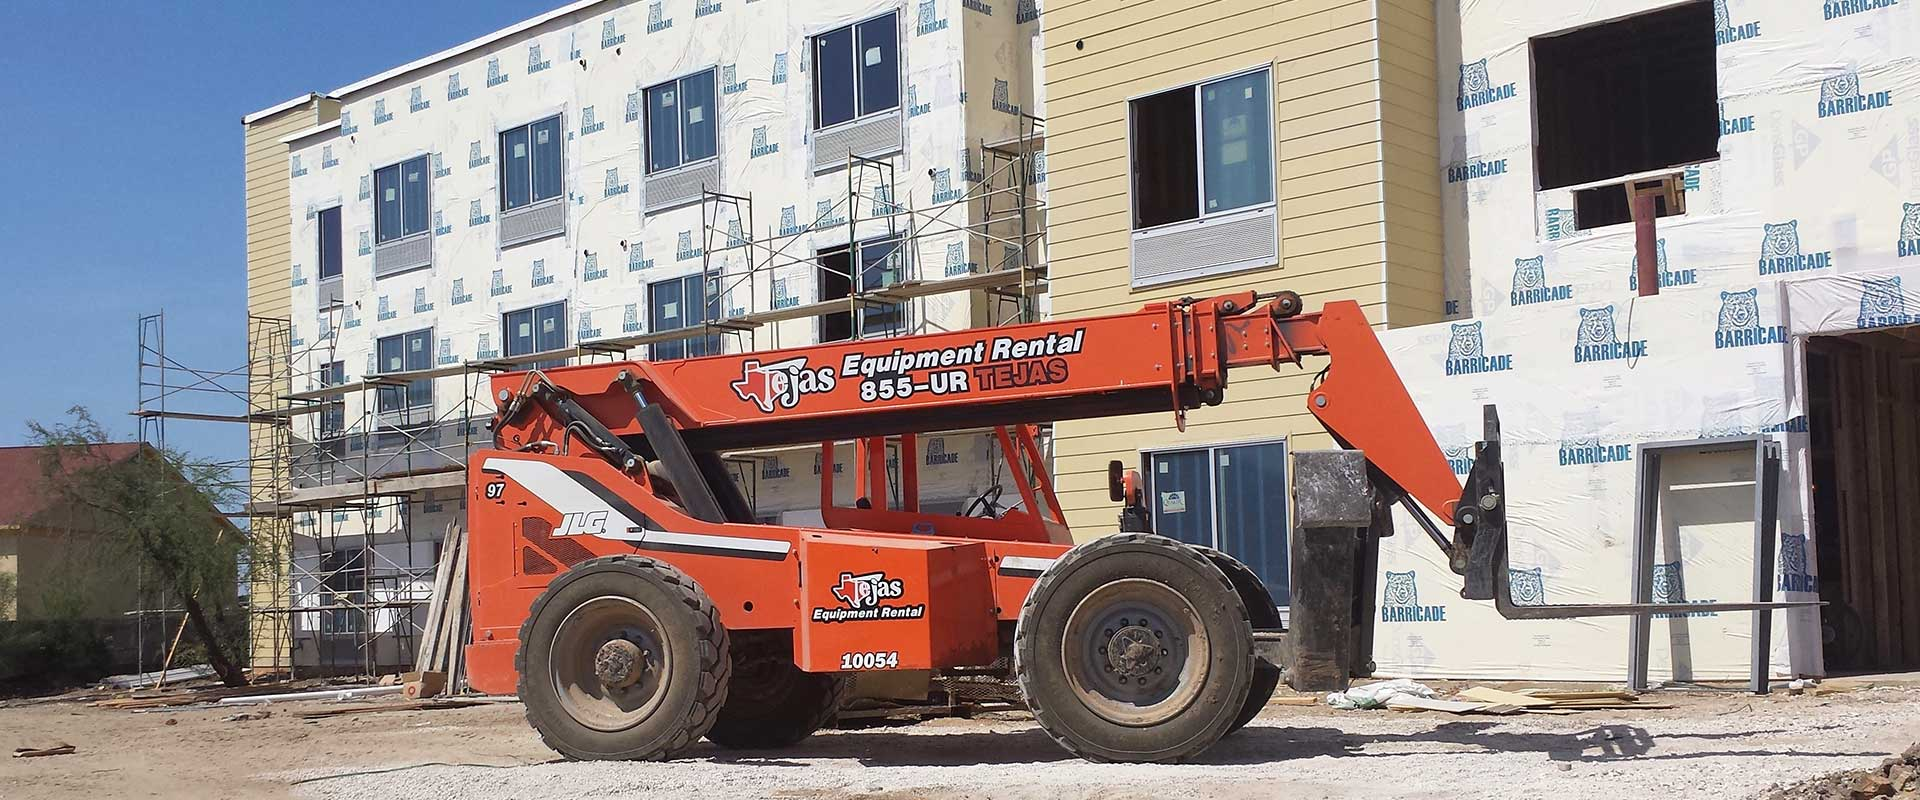 Telehandler Equipment Rentals in South Texas